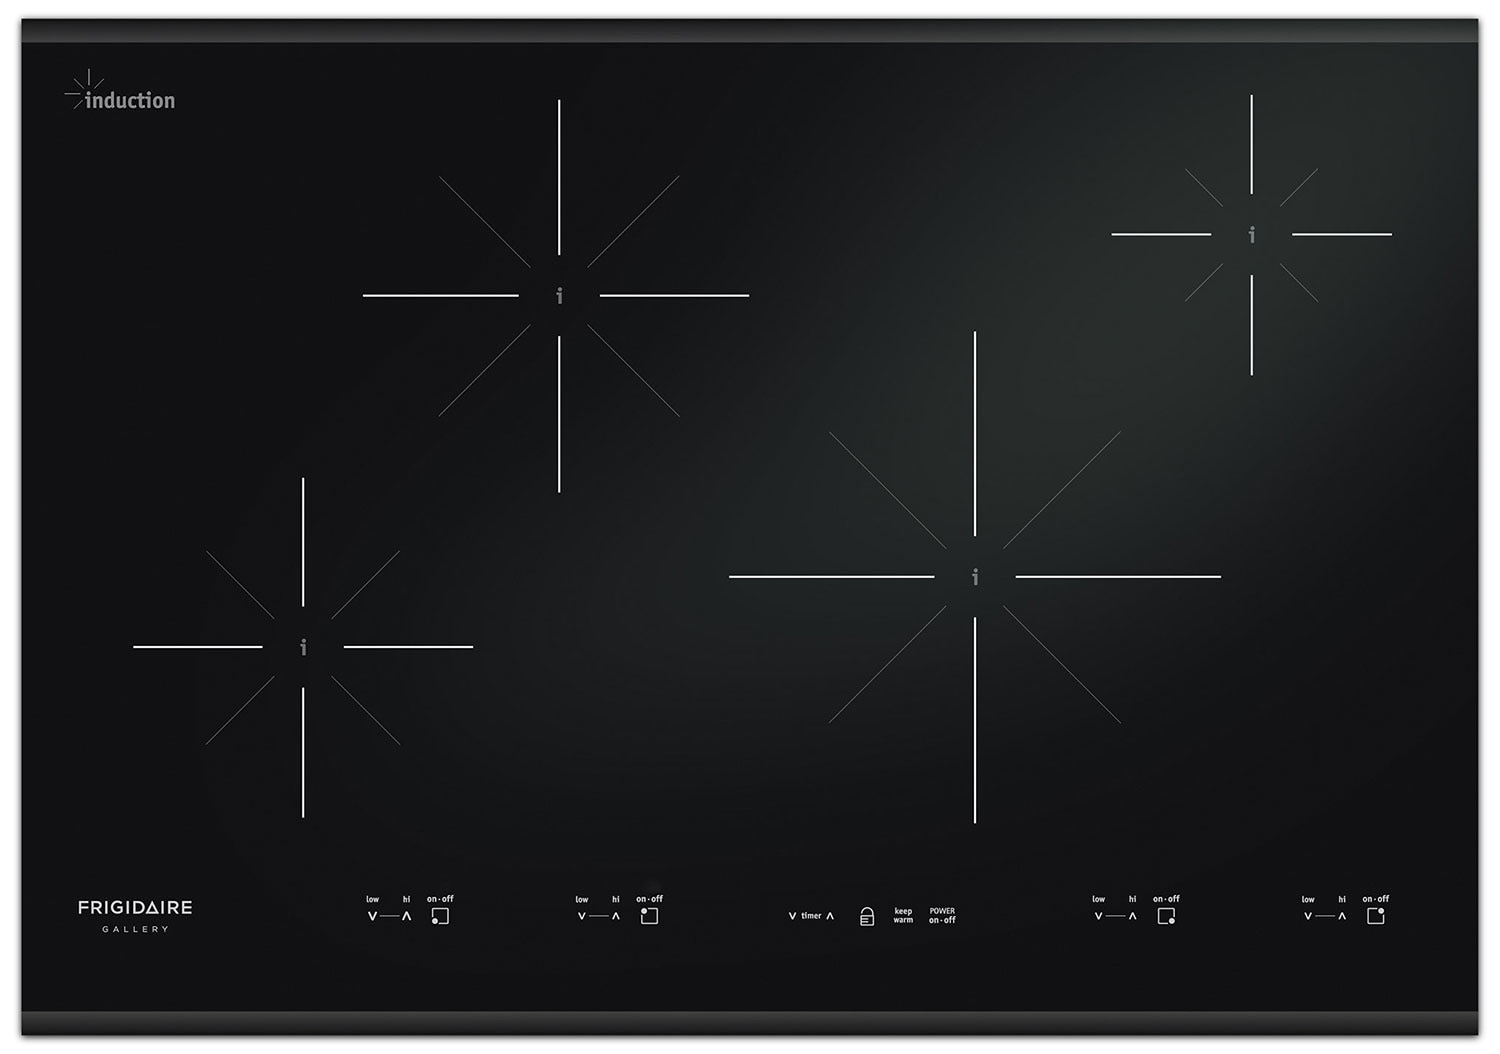 Frigidaire Gallery Black Induction Cooktop - FGIC3067MB